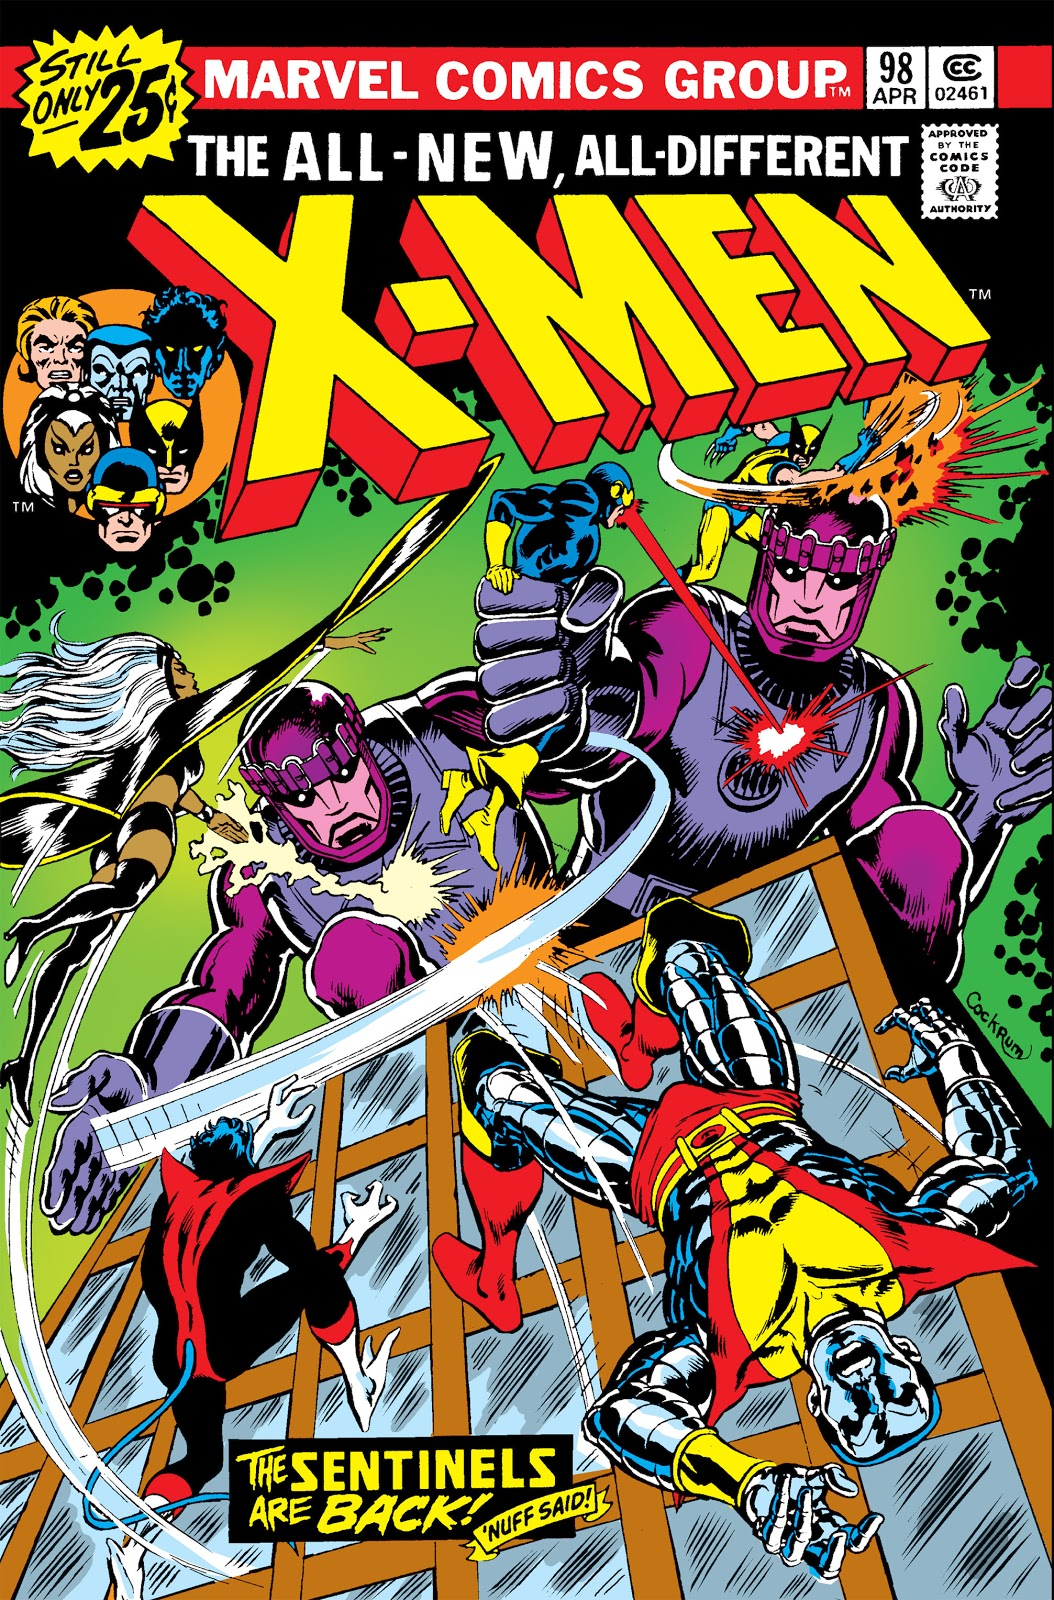 Cyclops, Storm, Wolverine, Nightcrawler, and Colossus locking in combat with two giant robots atop a building